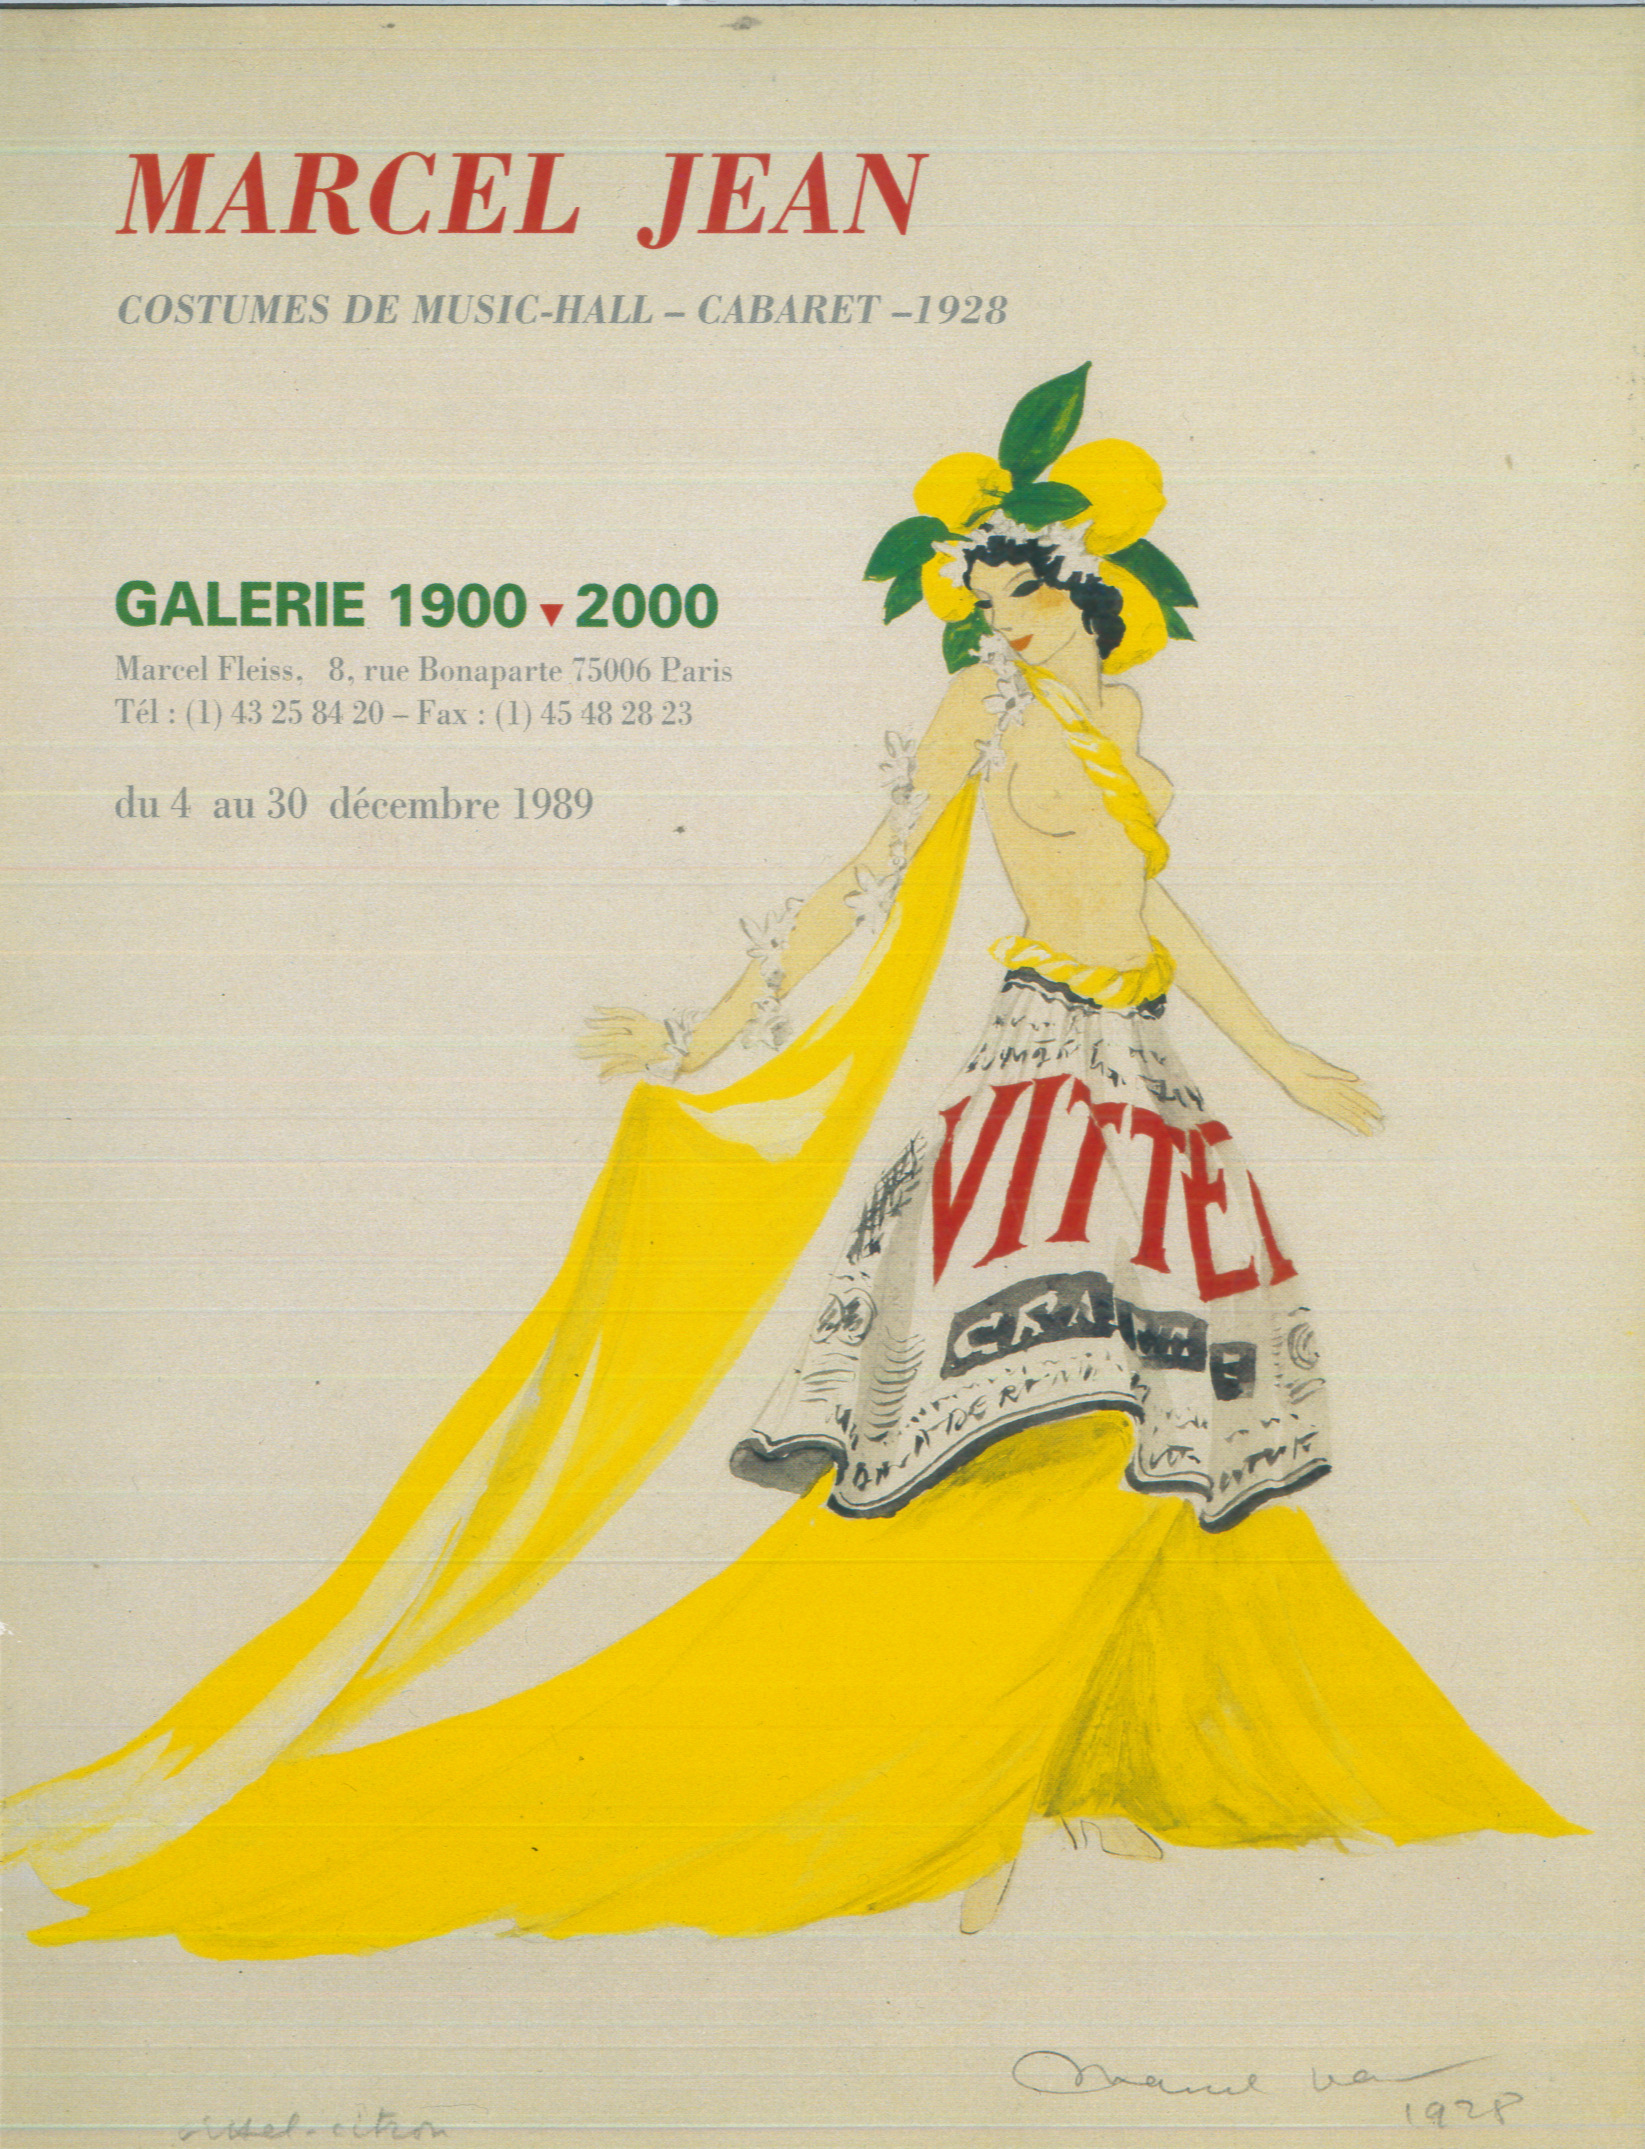 16-6-Marcel-Jean-Costumes-de-Music-Hall-Cabaret-1928-Paris-Galerie-1900-2000-1989